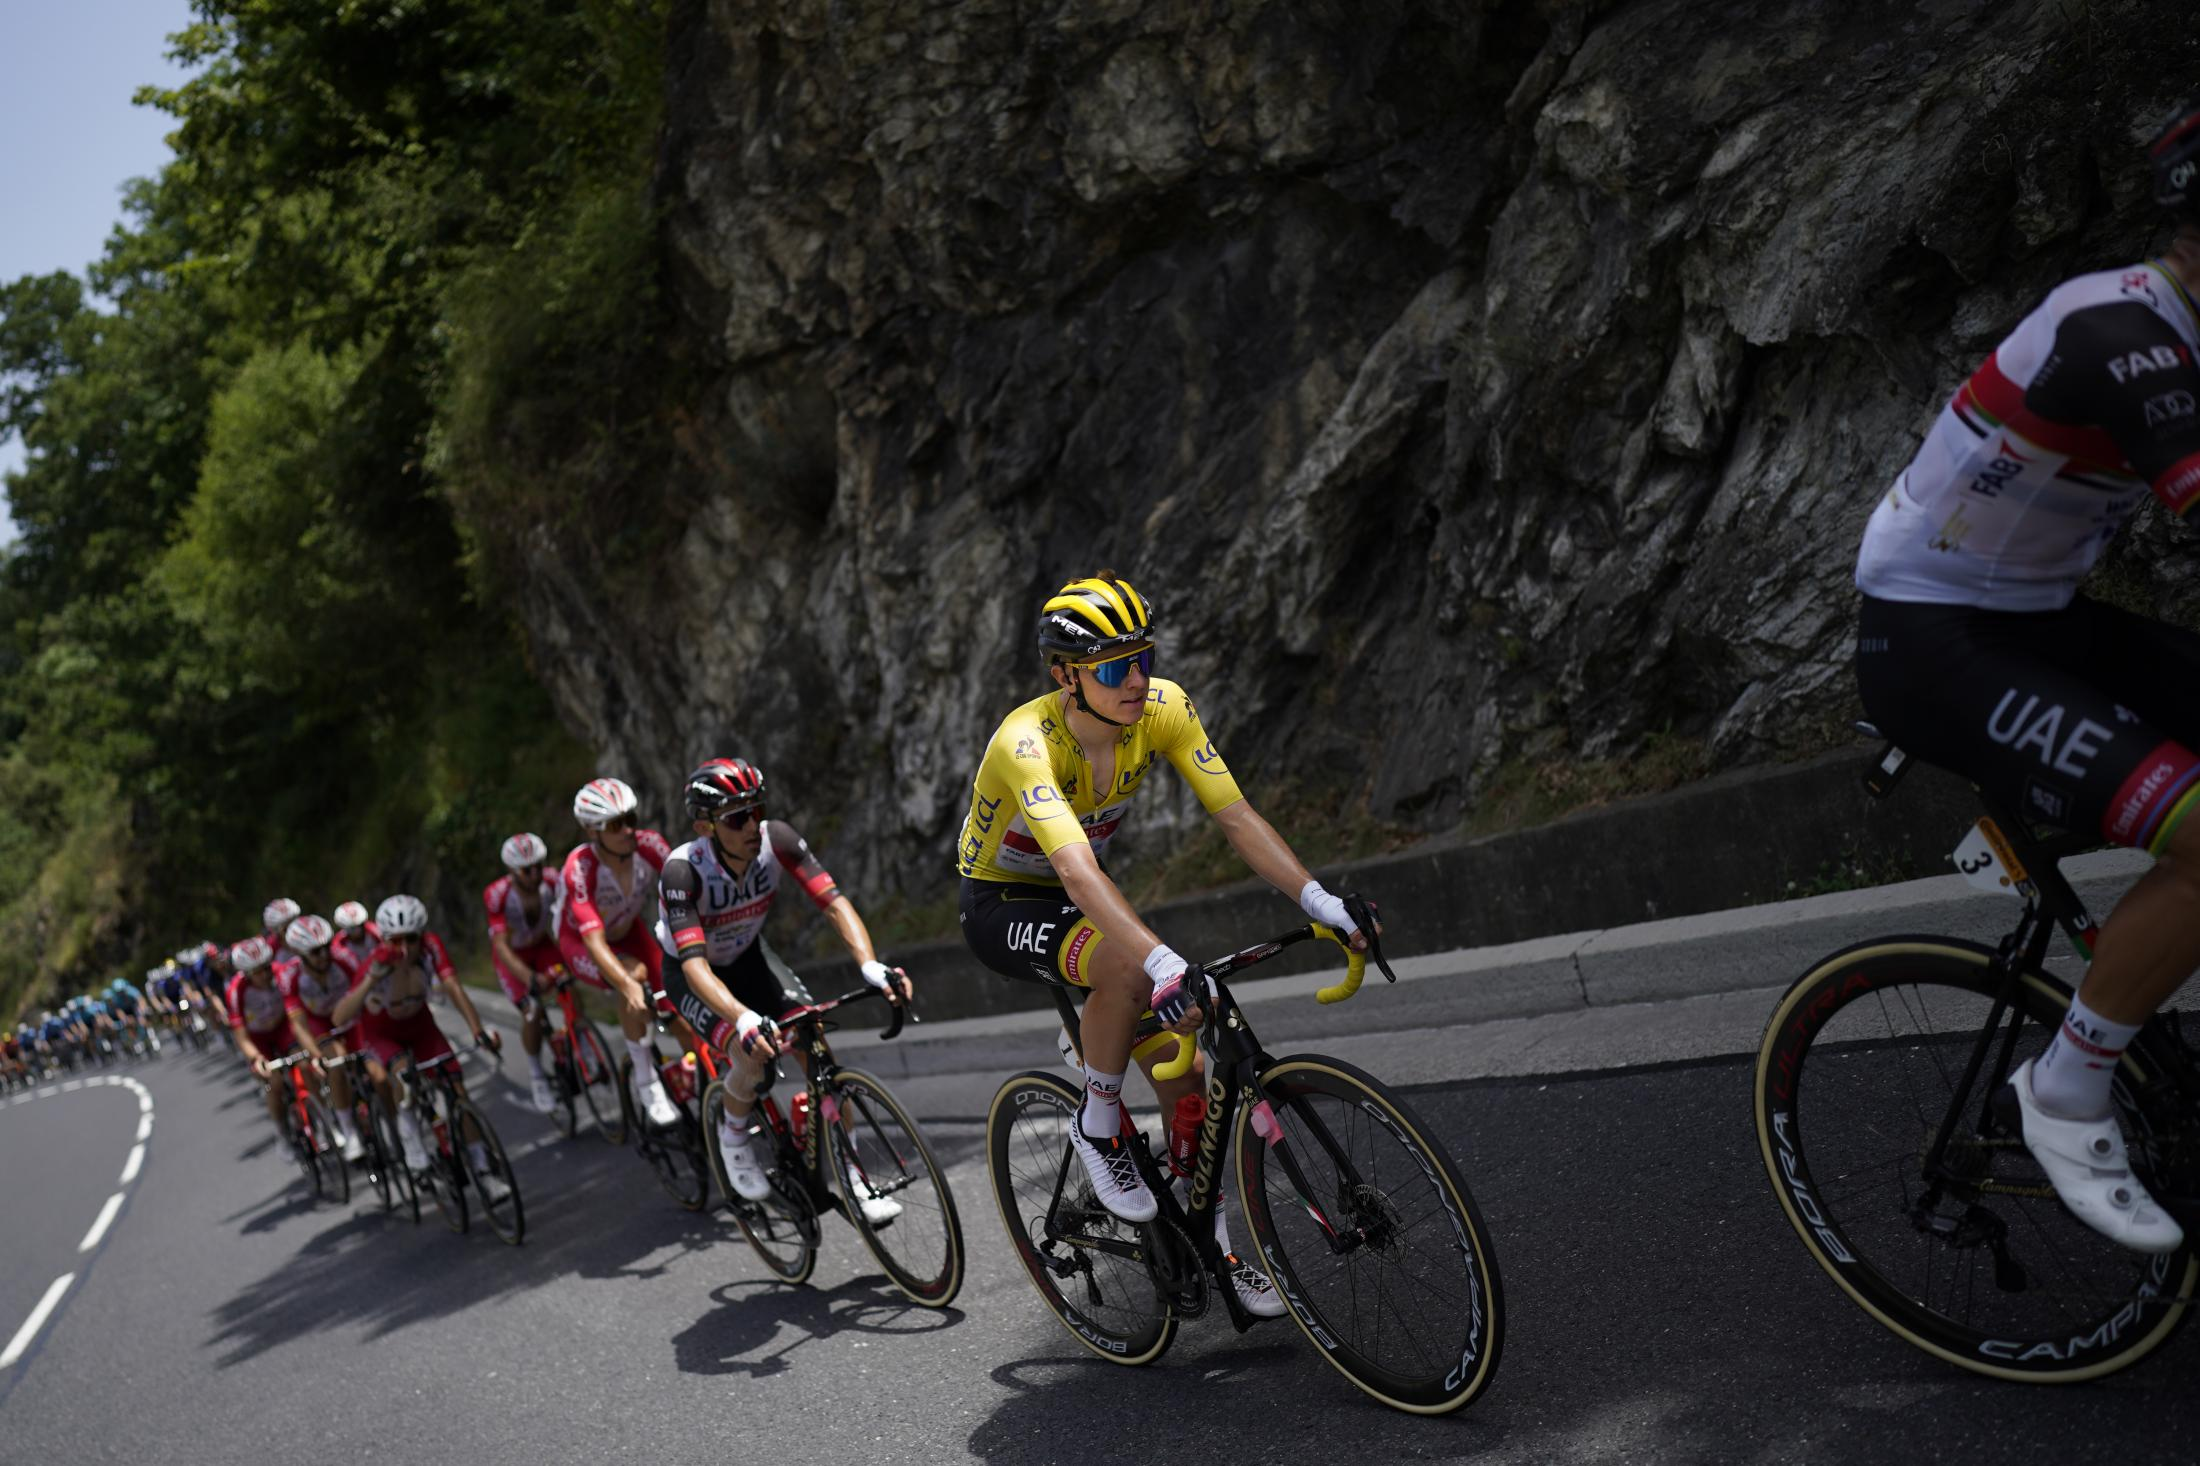 The pack with Slovenia's Tadej Pogacar, wearing the overall leader's yellow jersey, climbs during the fifteenth stage of the Tour de France cycling race over 191.3 kilometers (118.9 miles) with start in Ceret, France, and finish in Andorra-la-Vella, Andorra, Sunday, July 11, 2021. (AP Photo/Daniel Cole)